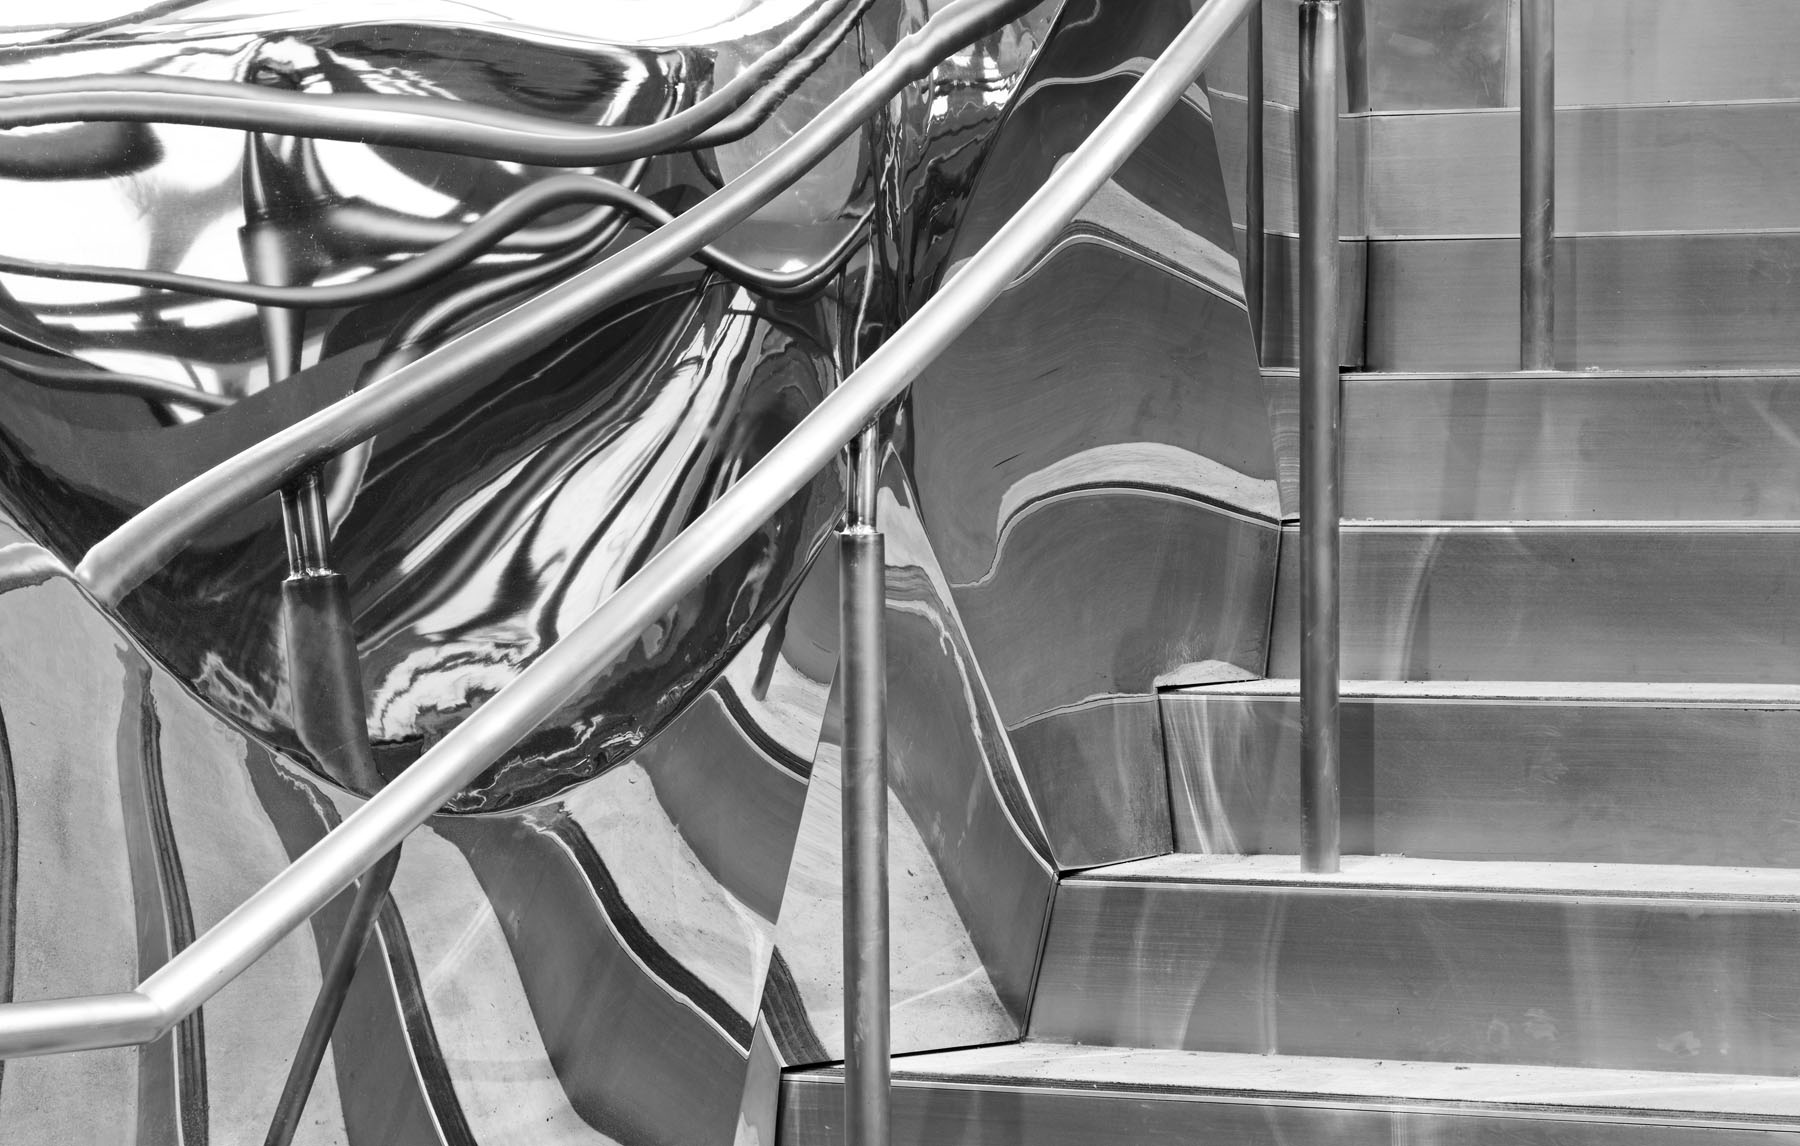 The striking stainless steel staircase lends a sculptural focal point to the main lobby and reflects the movement of both people and ideas. It starts from level 2 at the Ultimo Road entry and connects to student spaces on level 3.